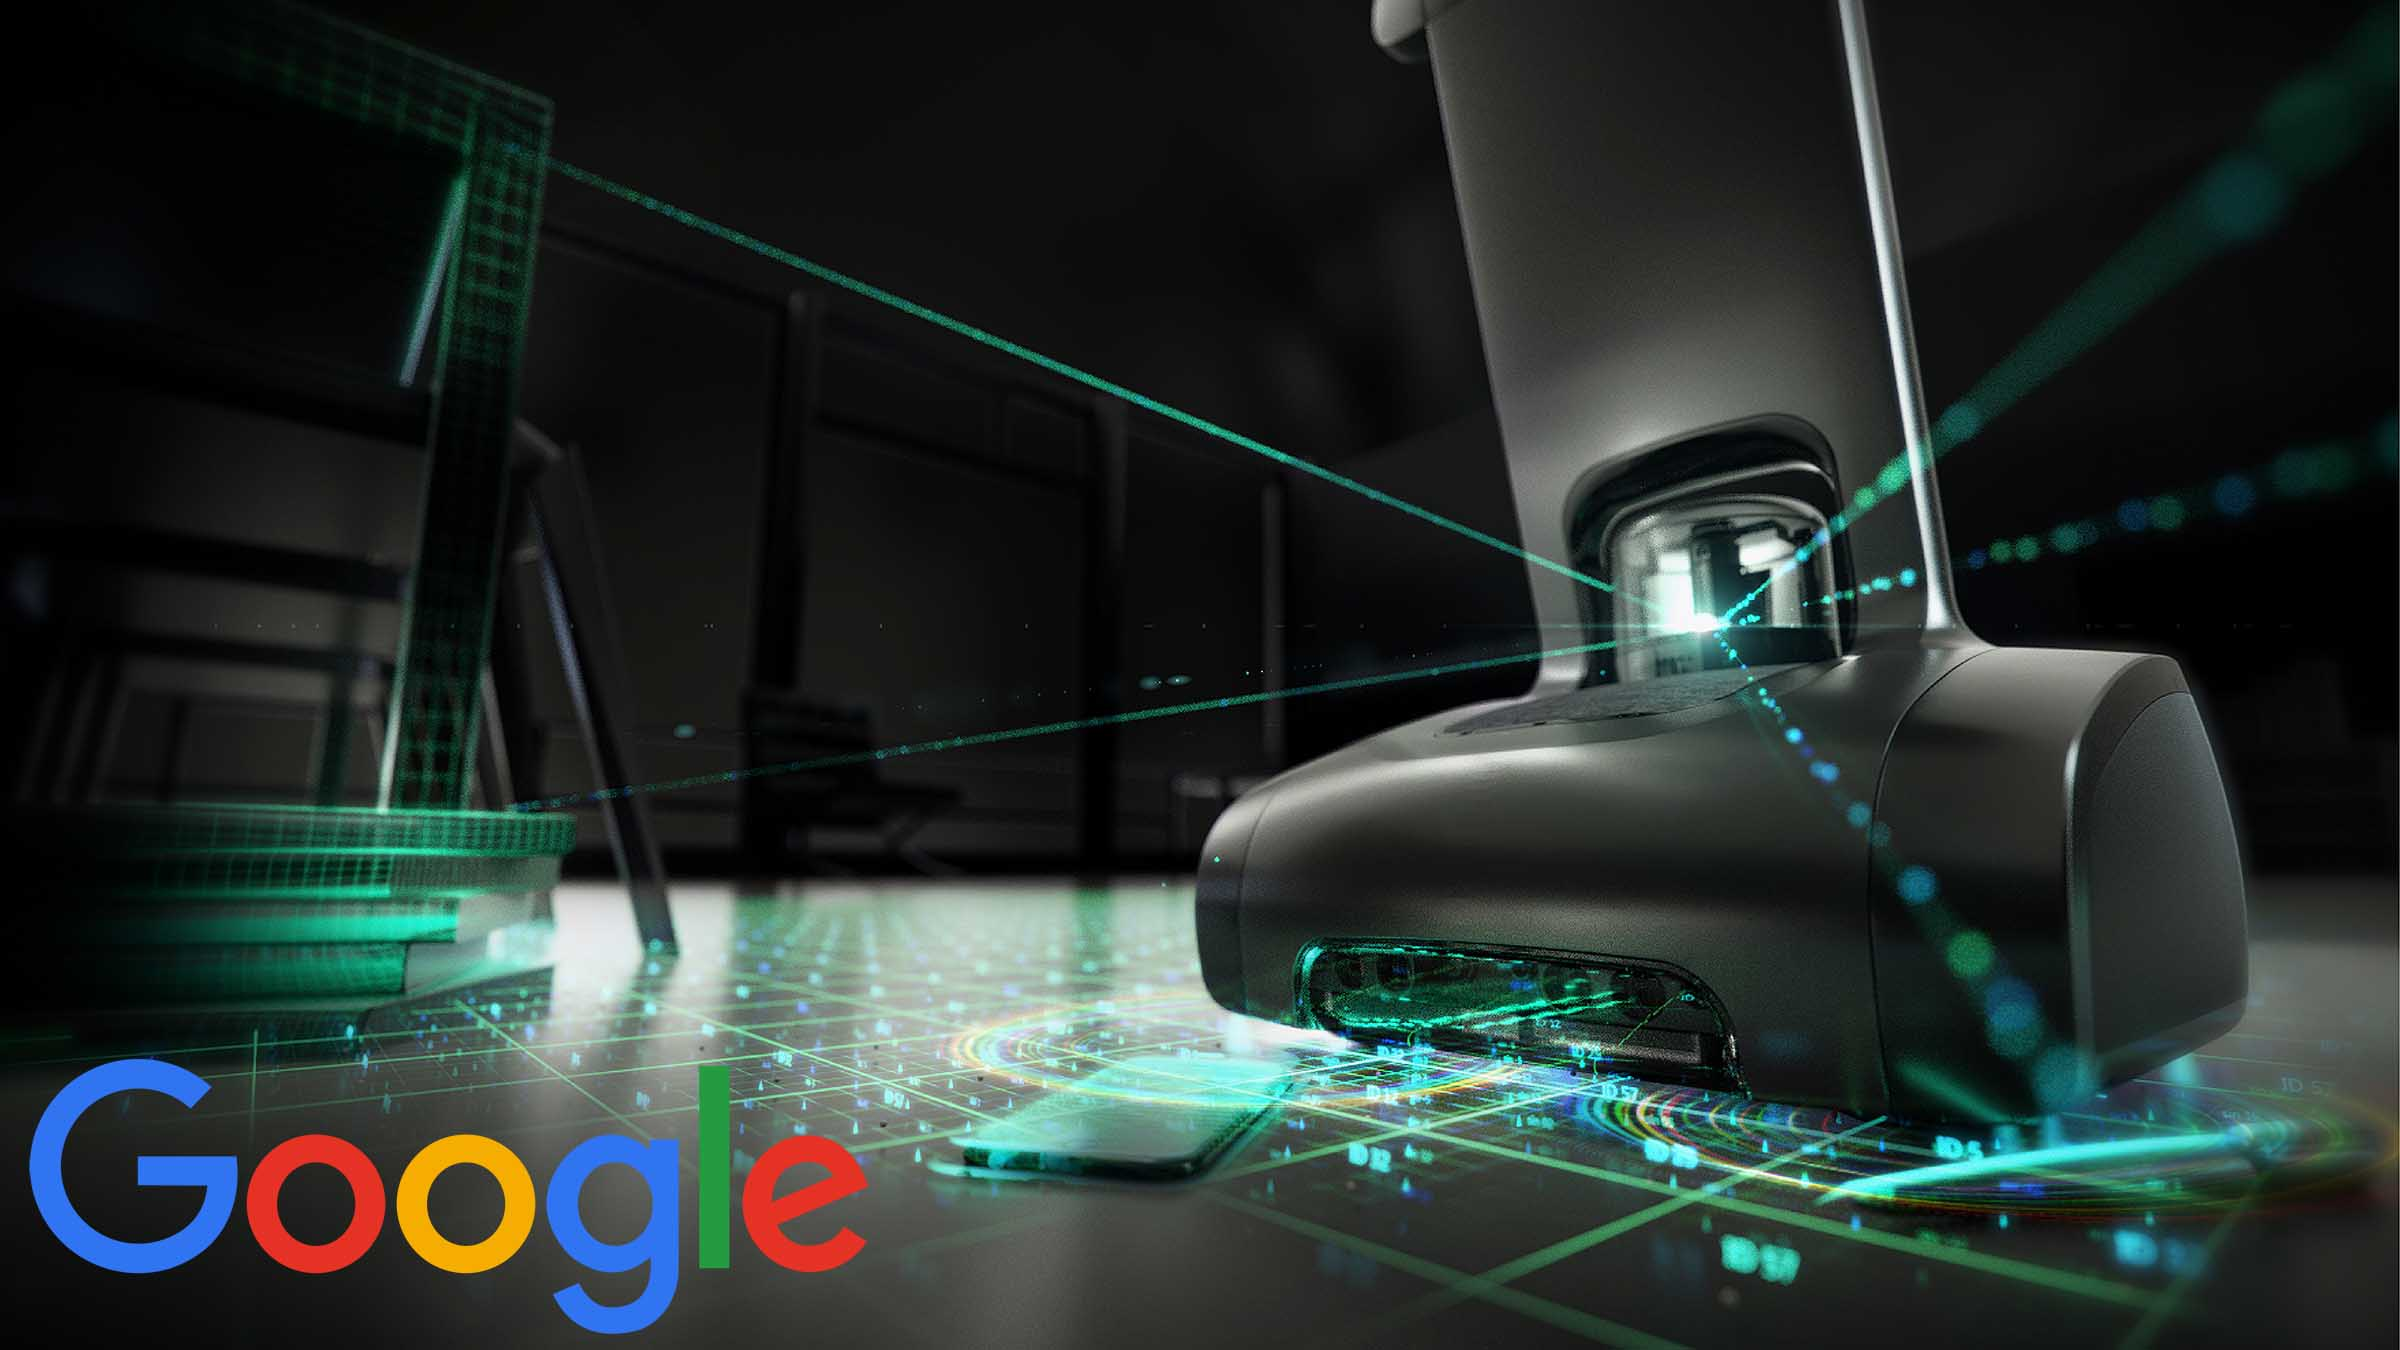 Temi is now partnering With Google, the biggest search engine in the world, to develop the robot to carry the Google Assistant.